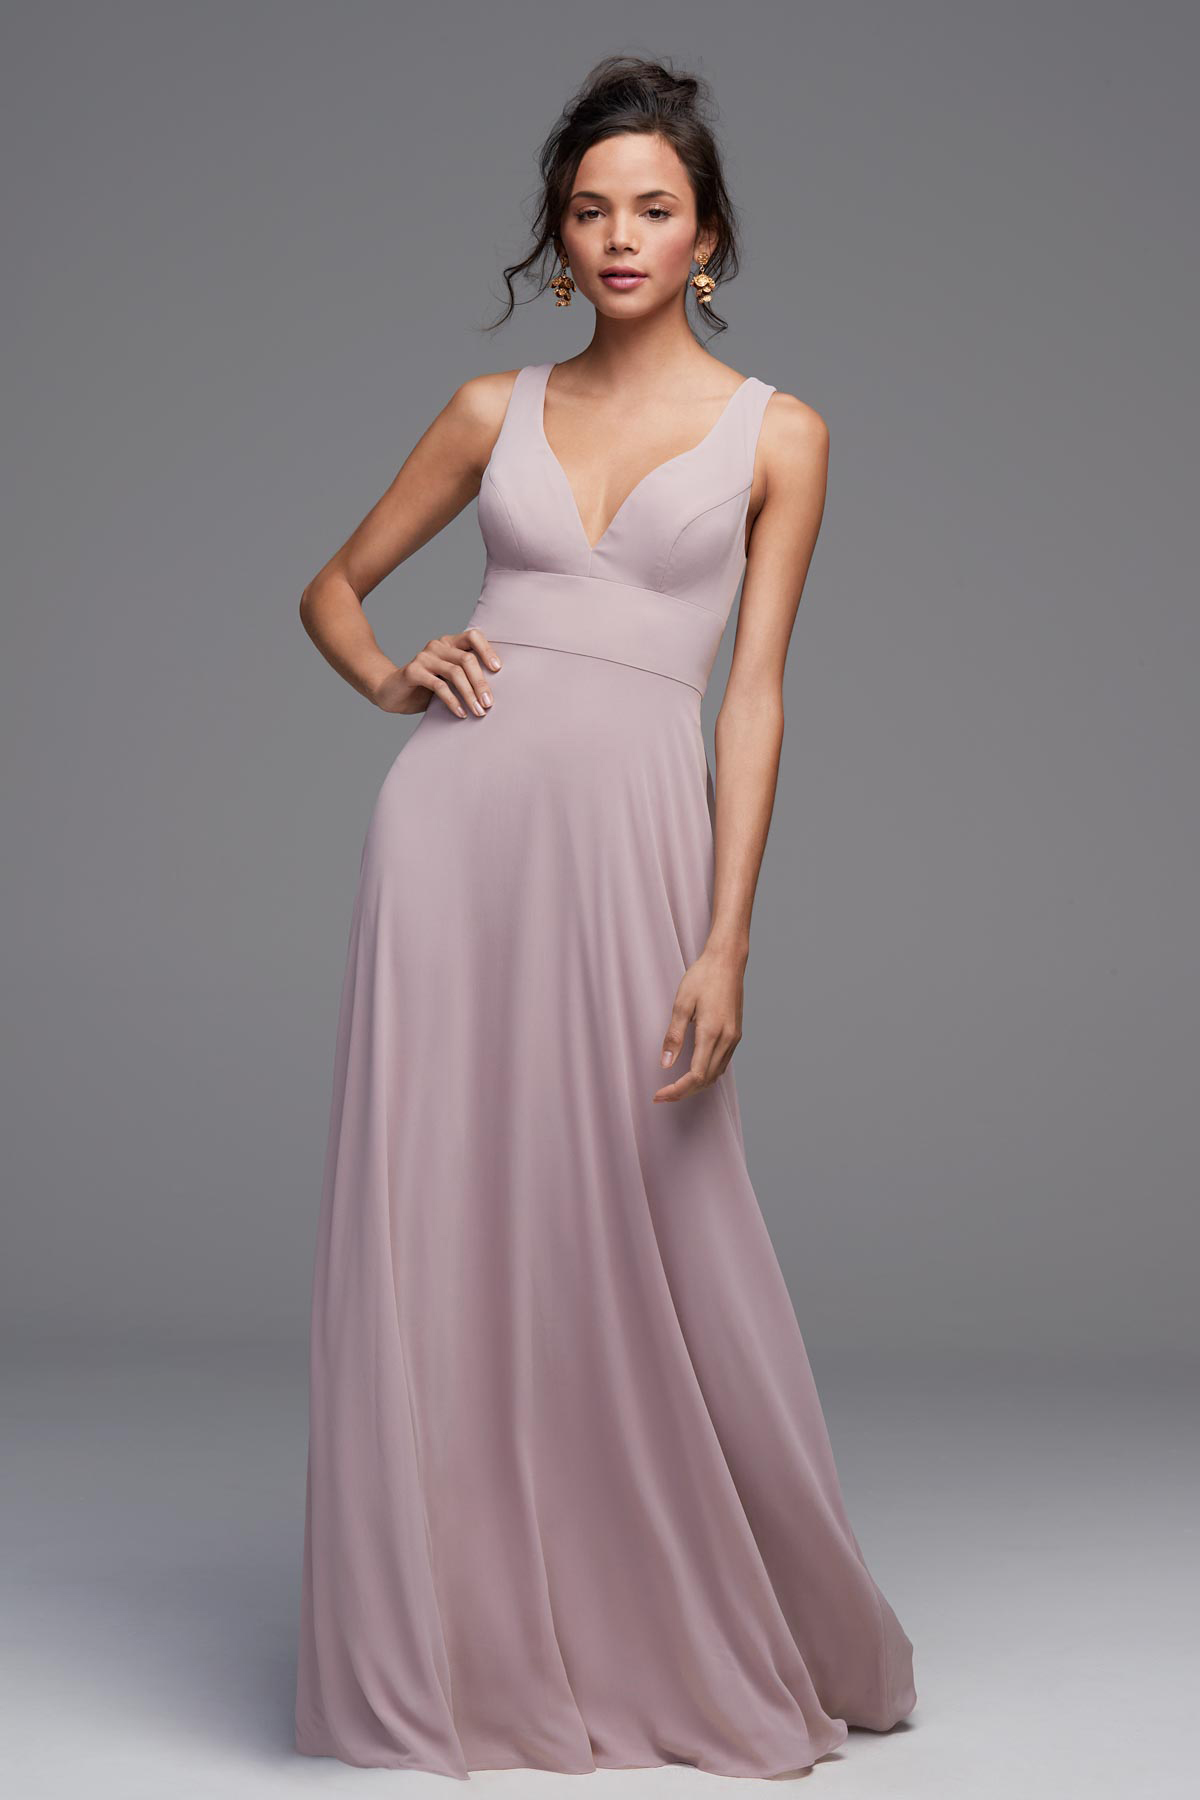 4503 Bridesmaids Dress By Watters